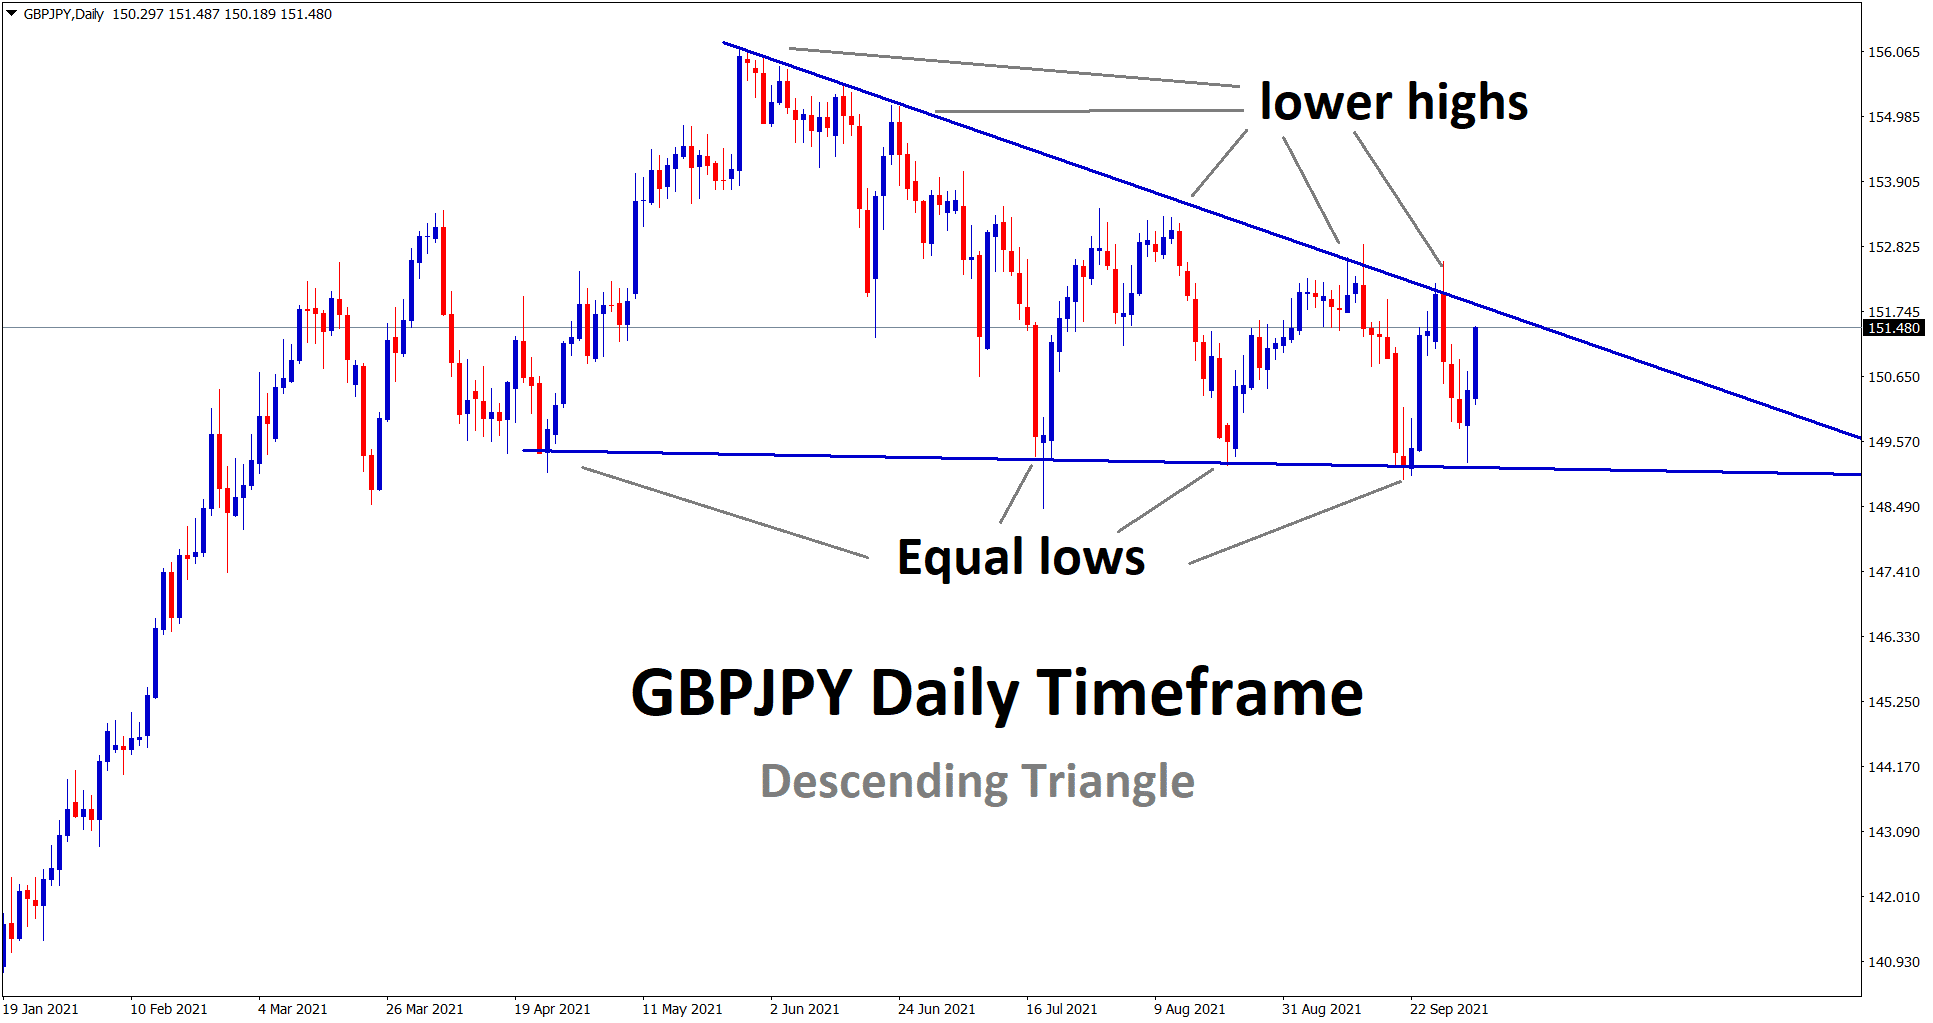 GBPJPY is going to break the descending channel pattern soon wait for the confirmation of breakout